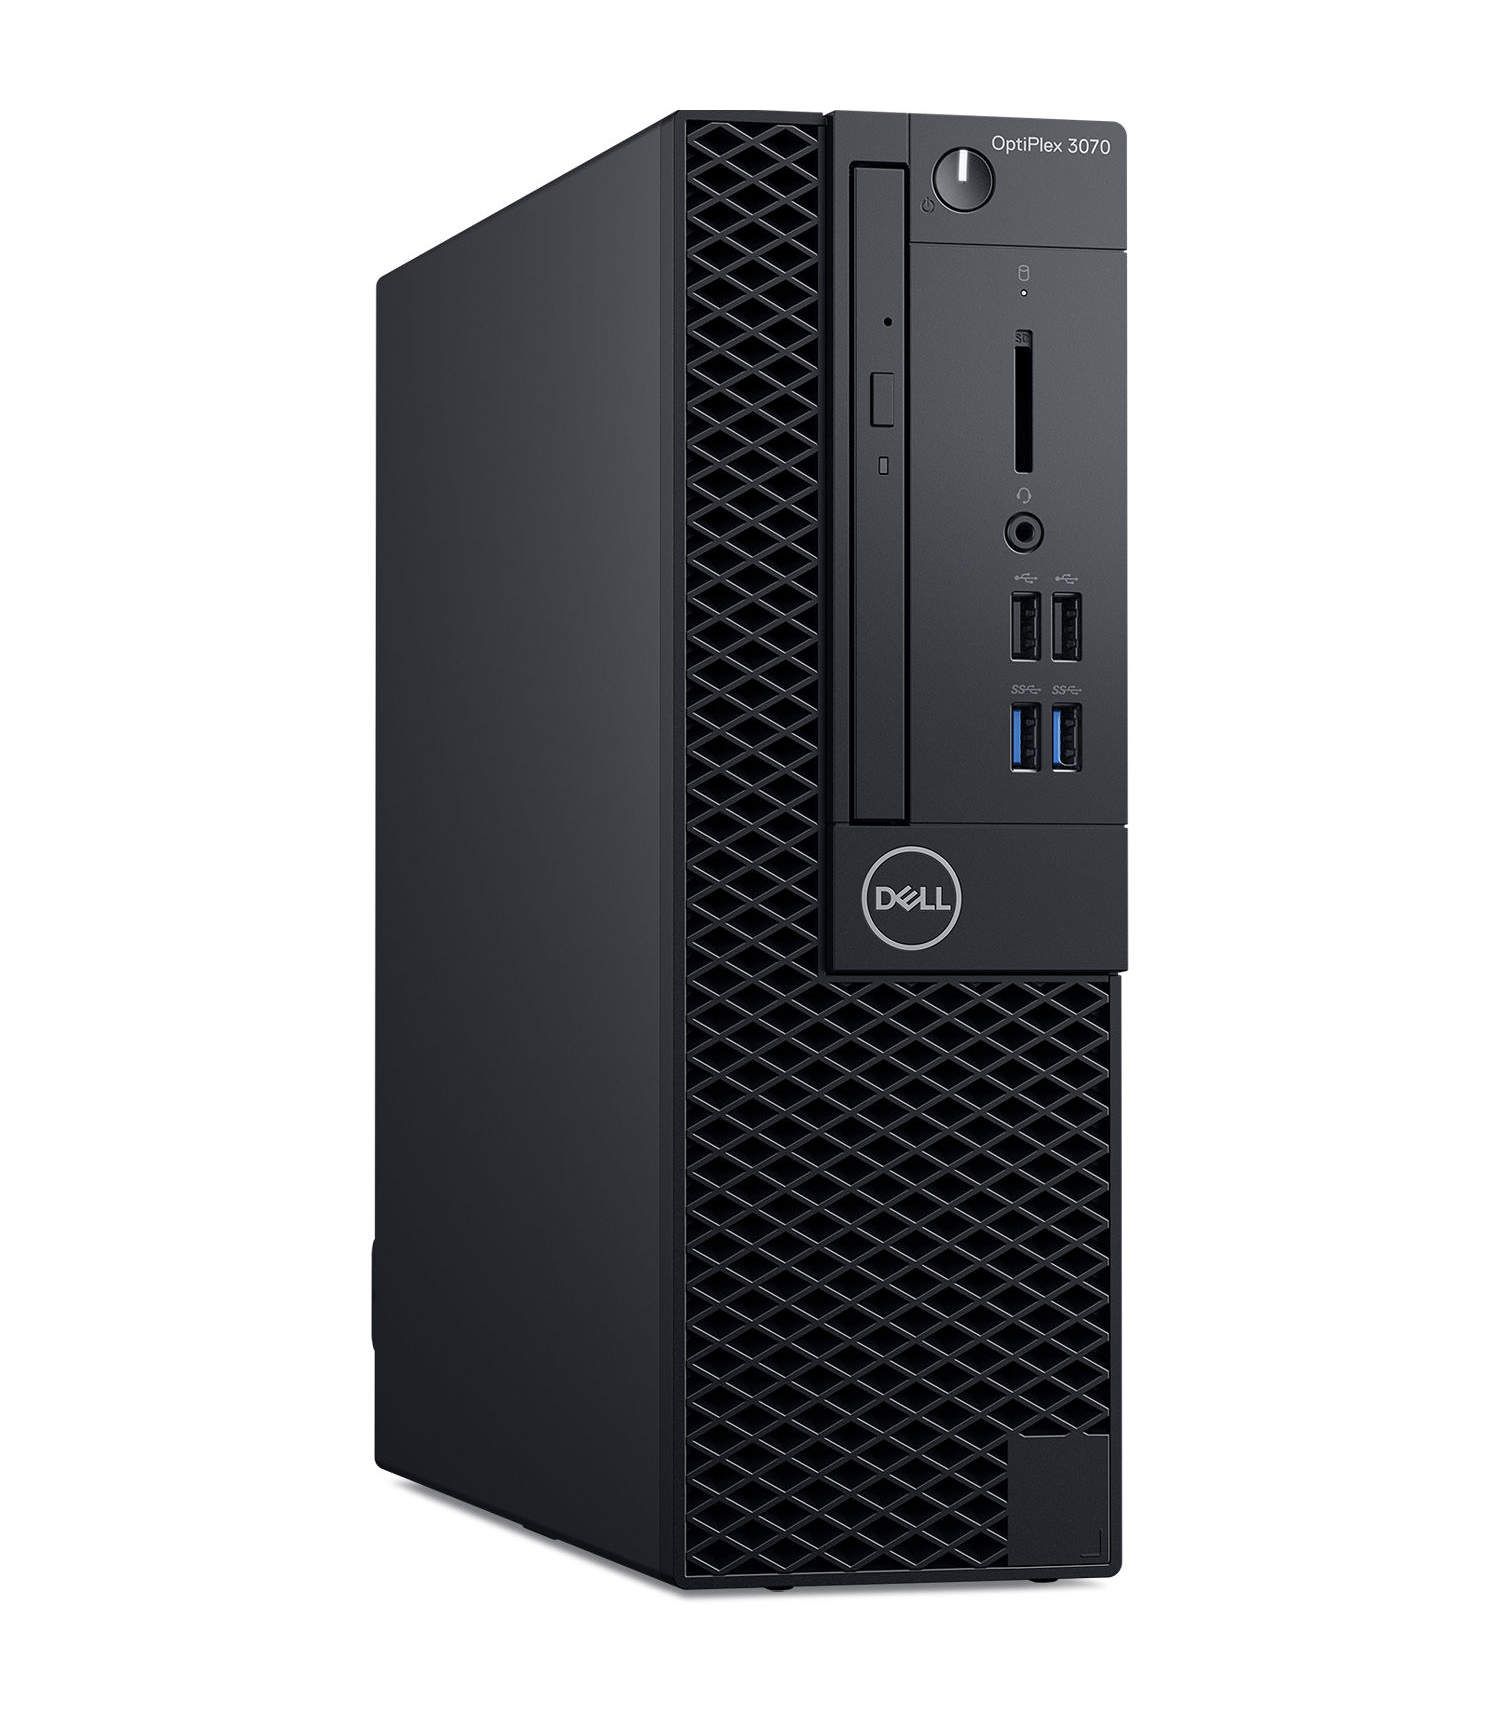 Dell OptiPlex 3070 Minitower I5 3YSP